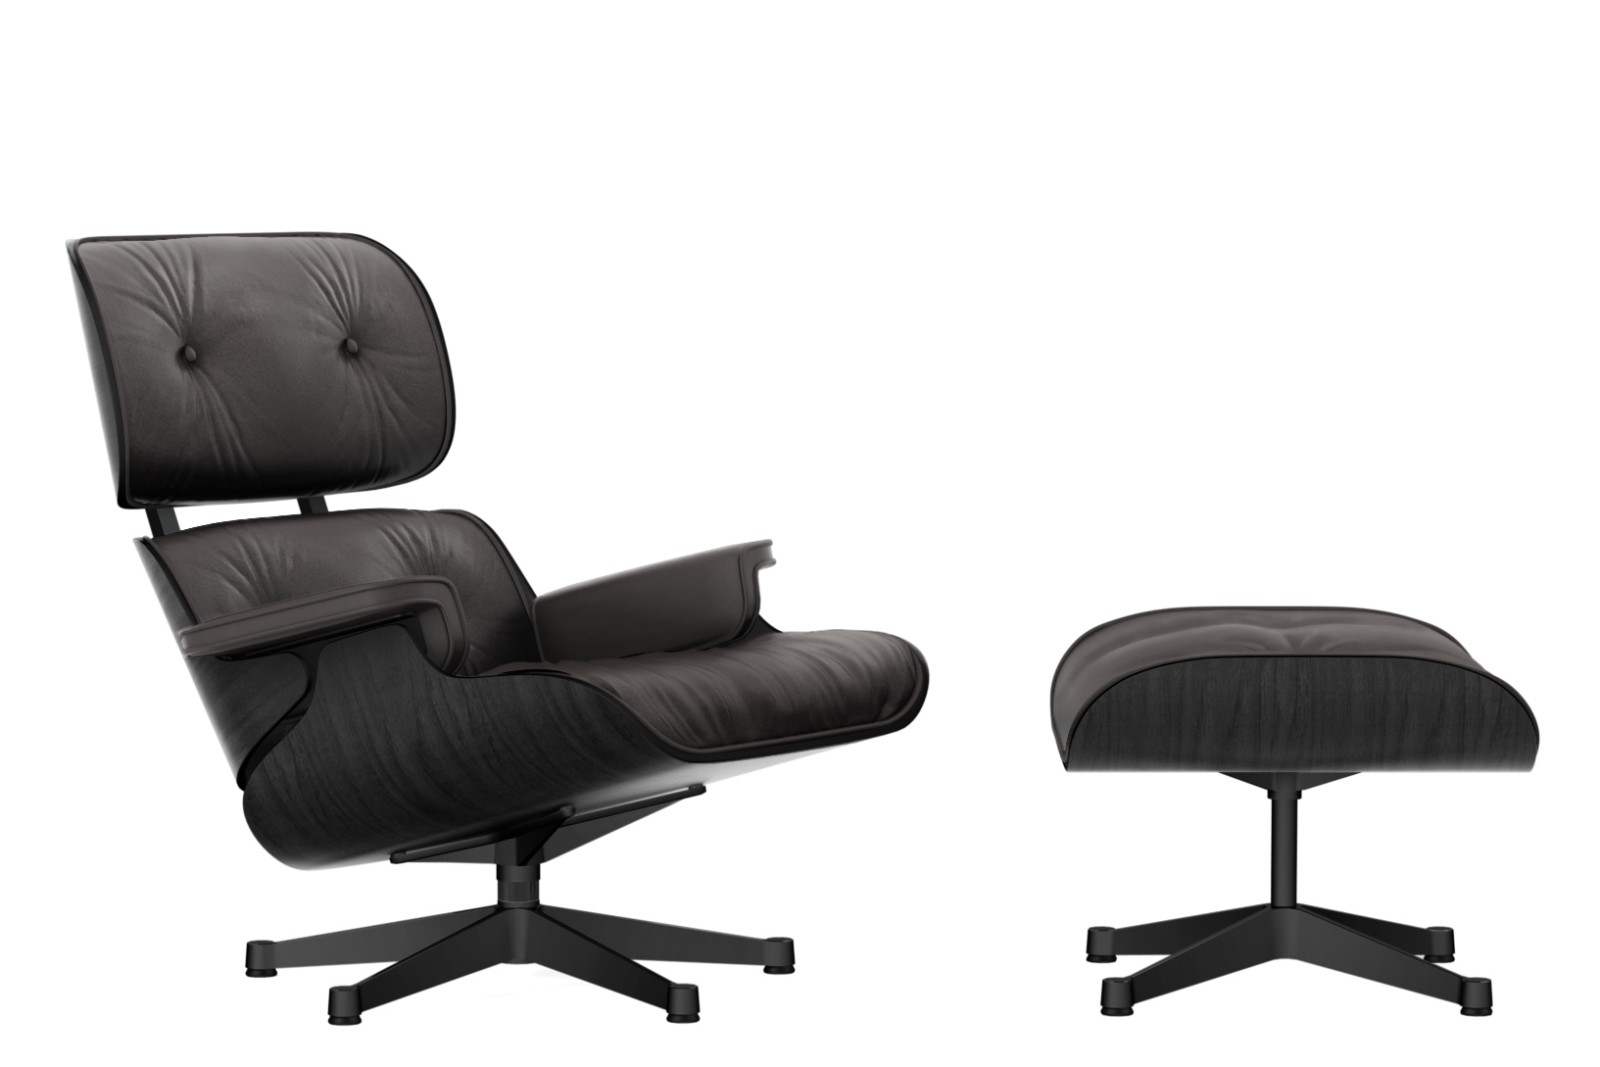 Vitra Eames Lounge Chair Dwg Vitra Eames Lounge Chair Ottoman Black Ash Shell Leather Premium